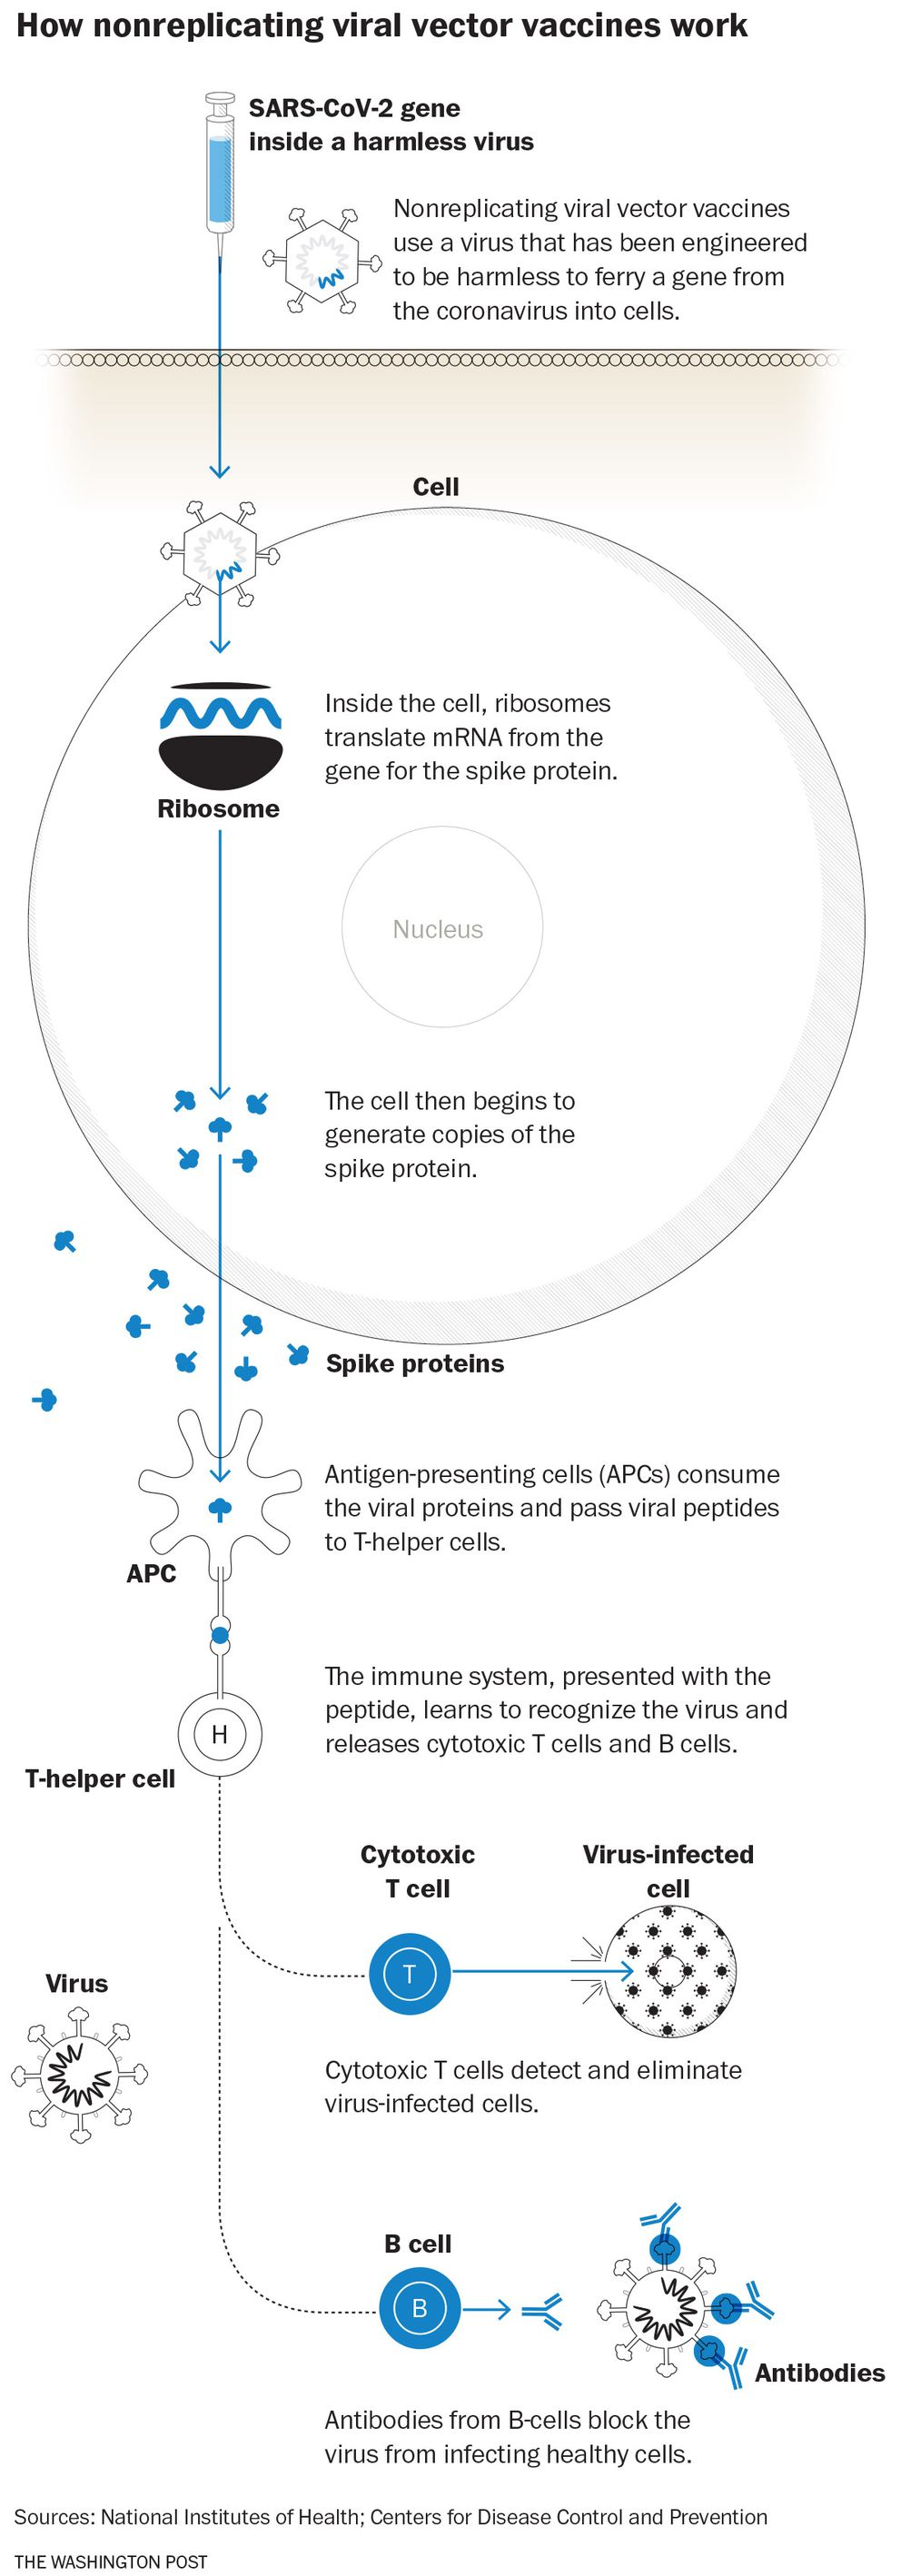 How non-replicating viral vector vaccines work